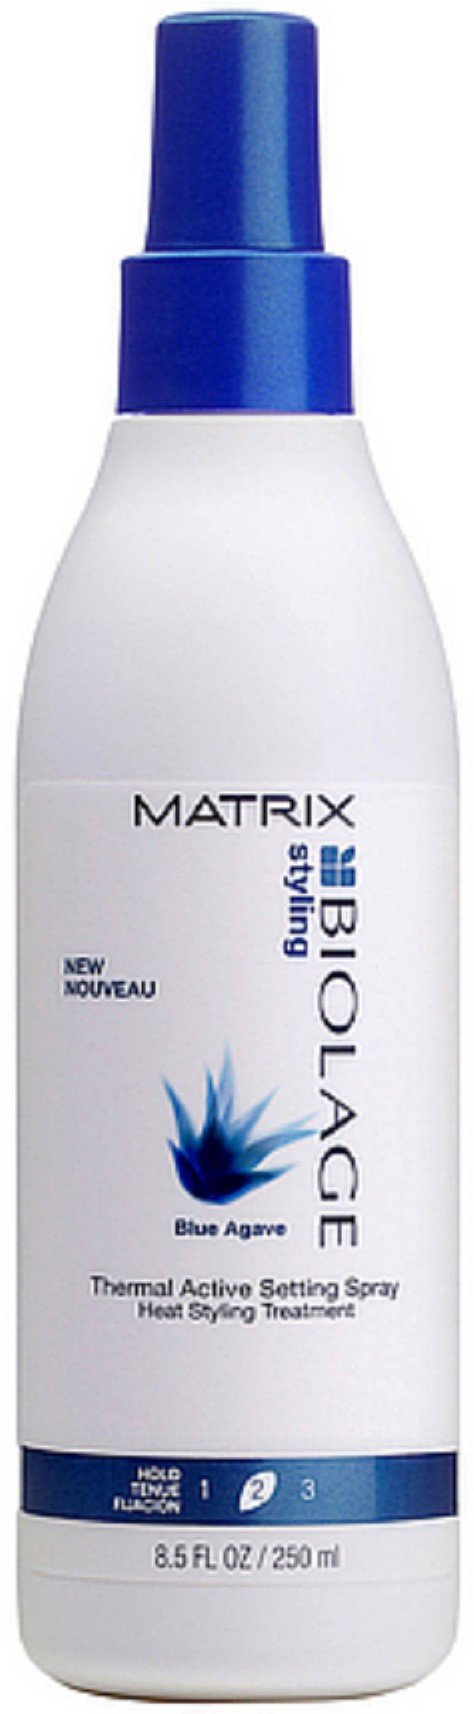 Matrix Biolage Thermal Active Setting Spray, 8.5 Ounce